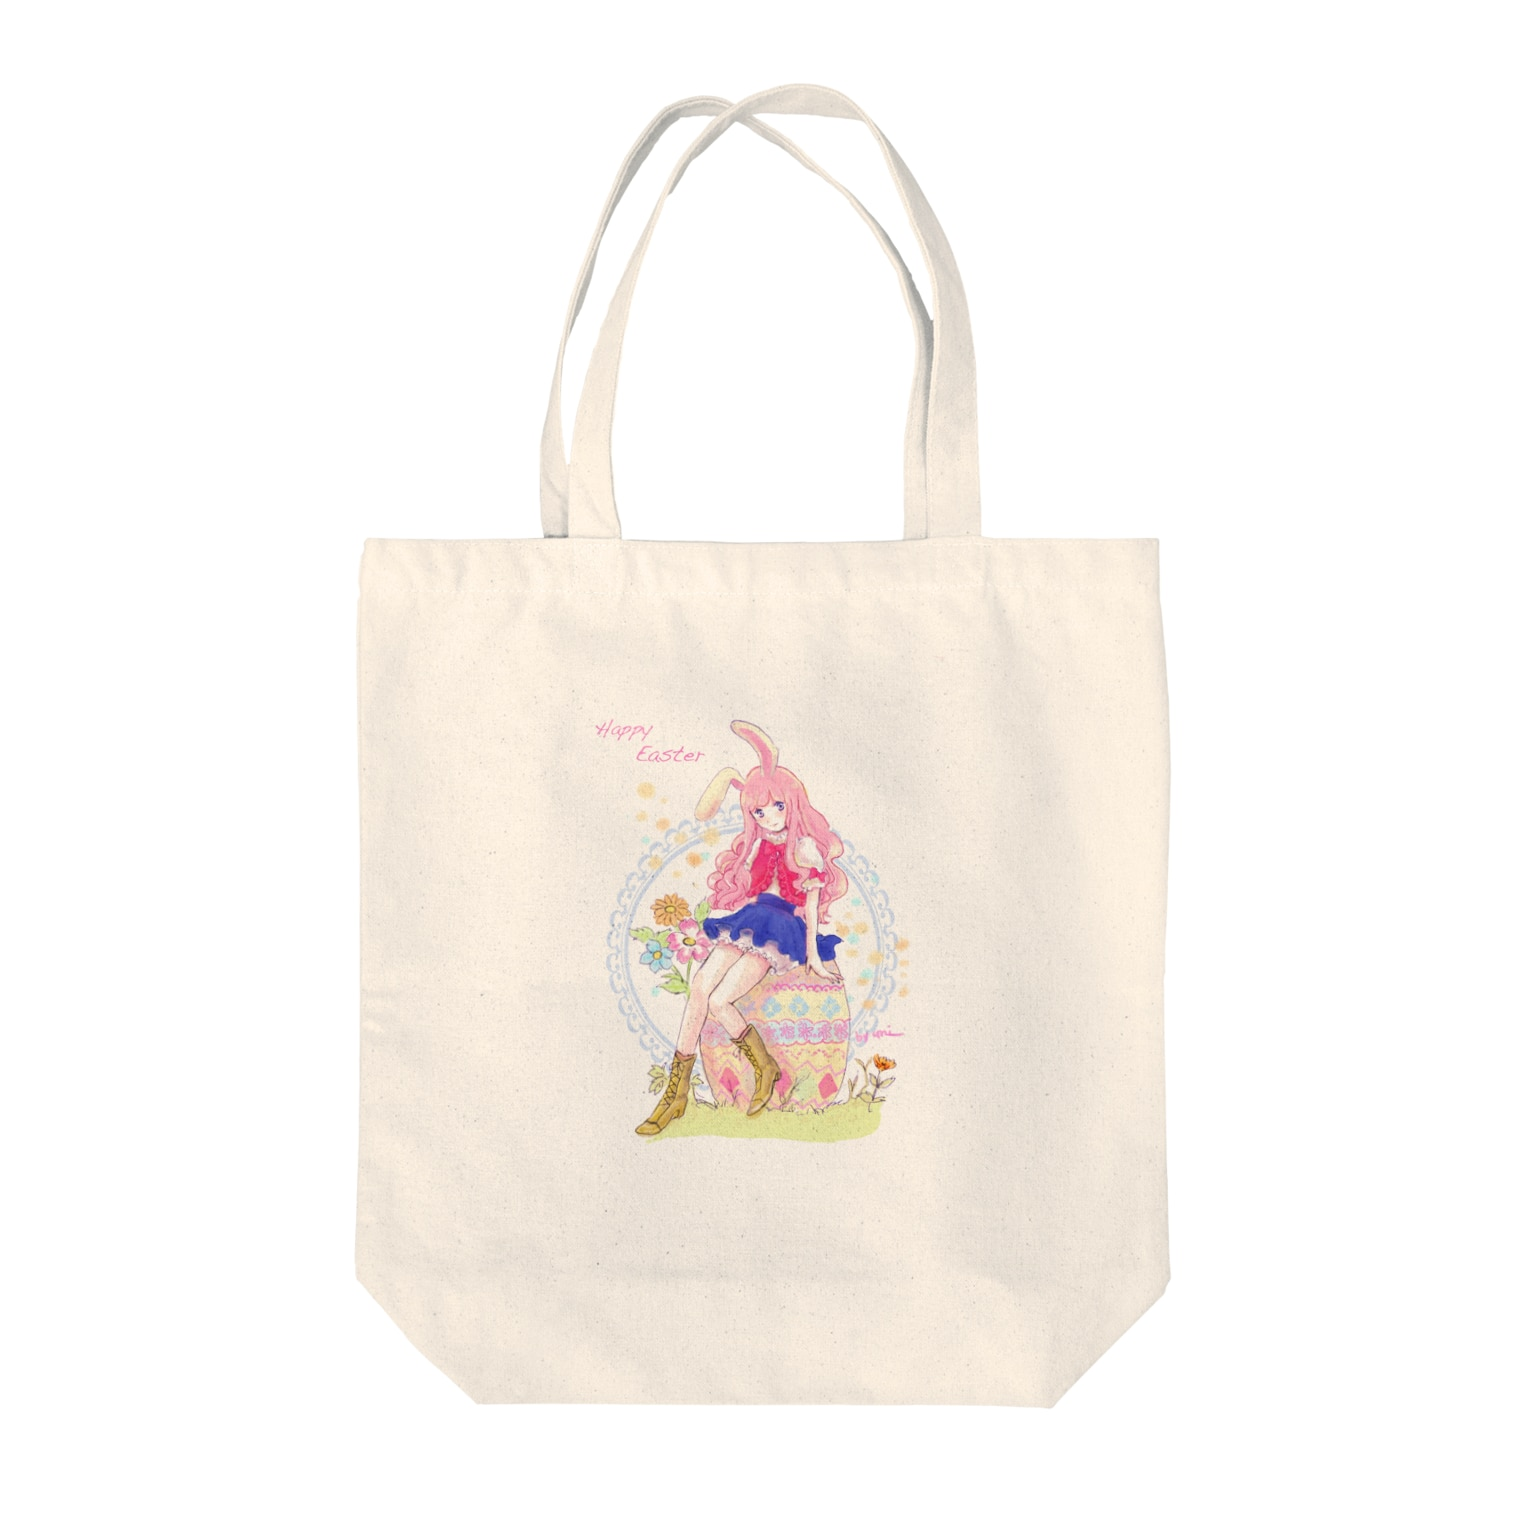 mountain-gardenのHappy EaSter トートバッグ